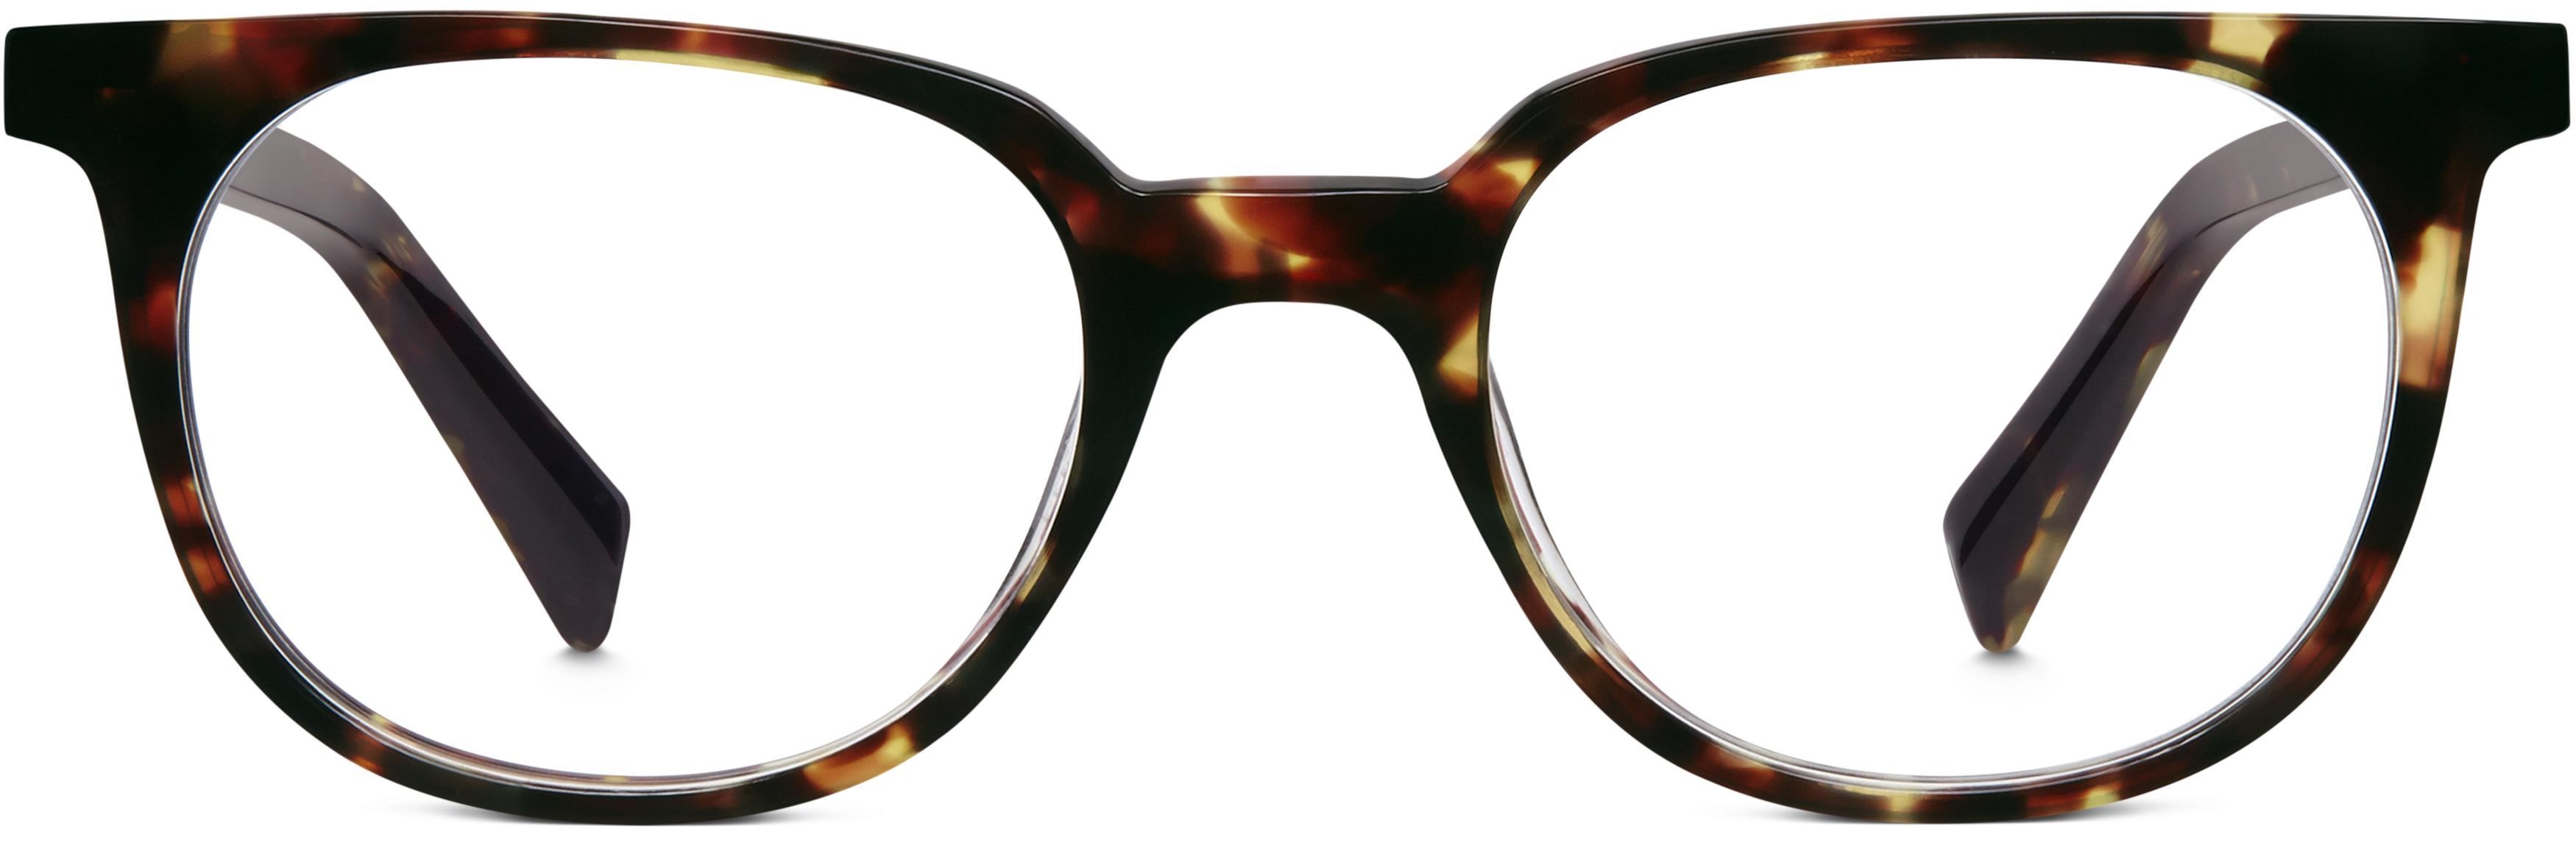 5cca6571a65 Women s Eyeglasses